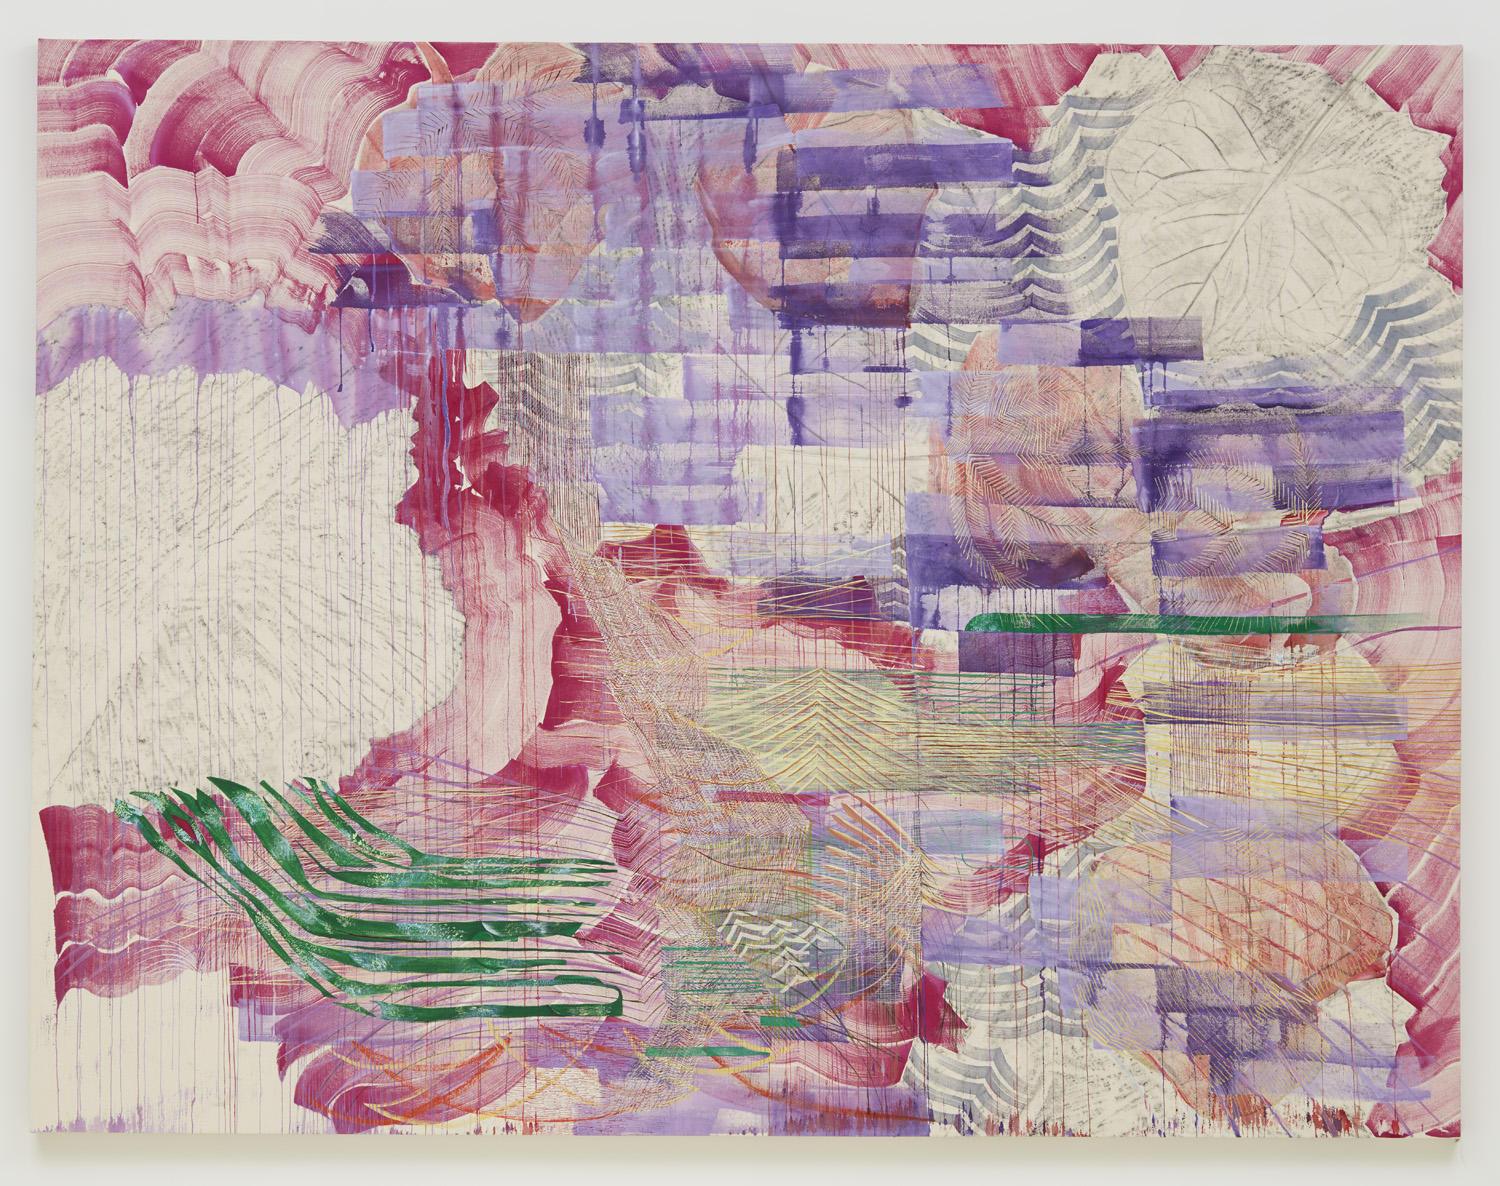 Cuttings (paulownia), 2018, by Alyse Rosner, is an pink, red, purple and green acrylic and graphite abstract linear and floral painting on canvas.